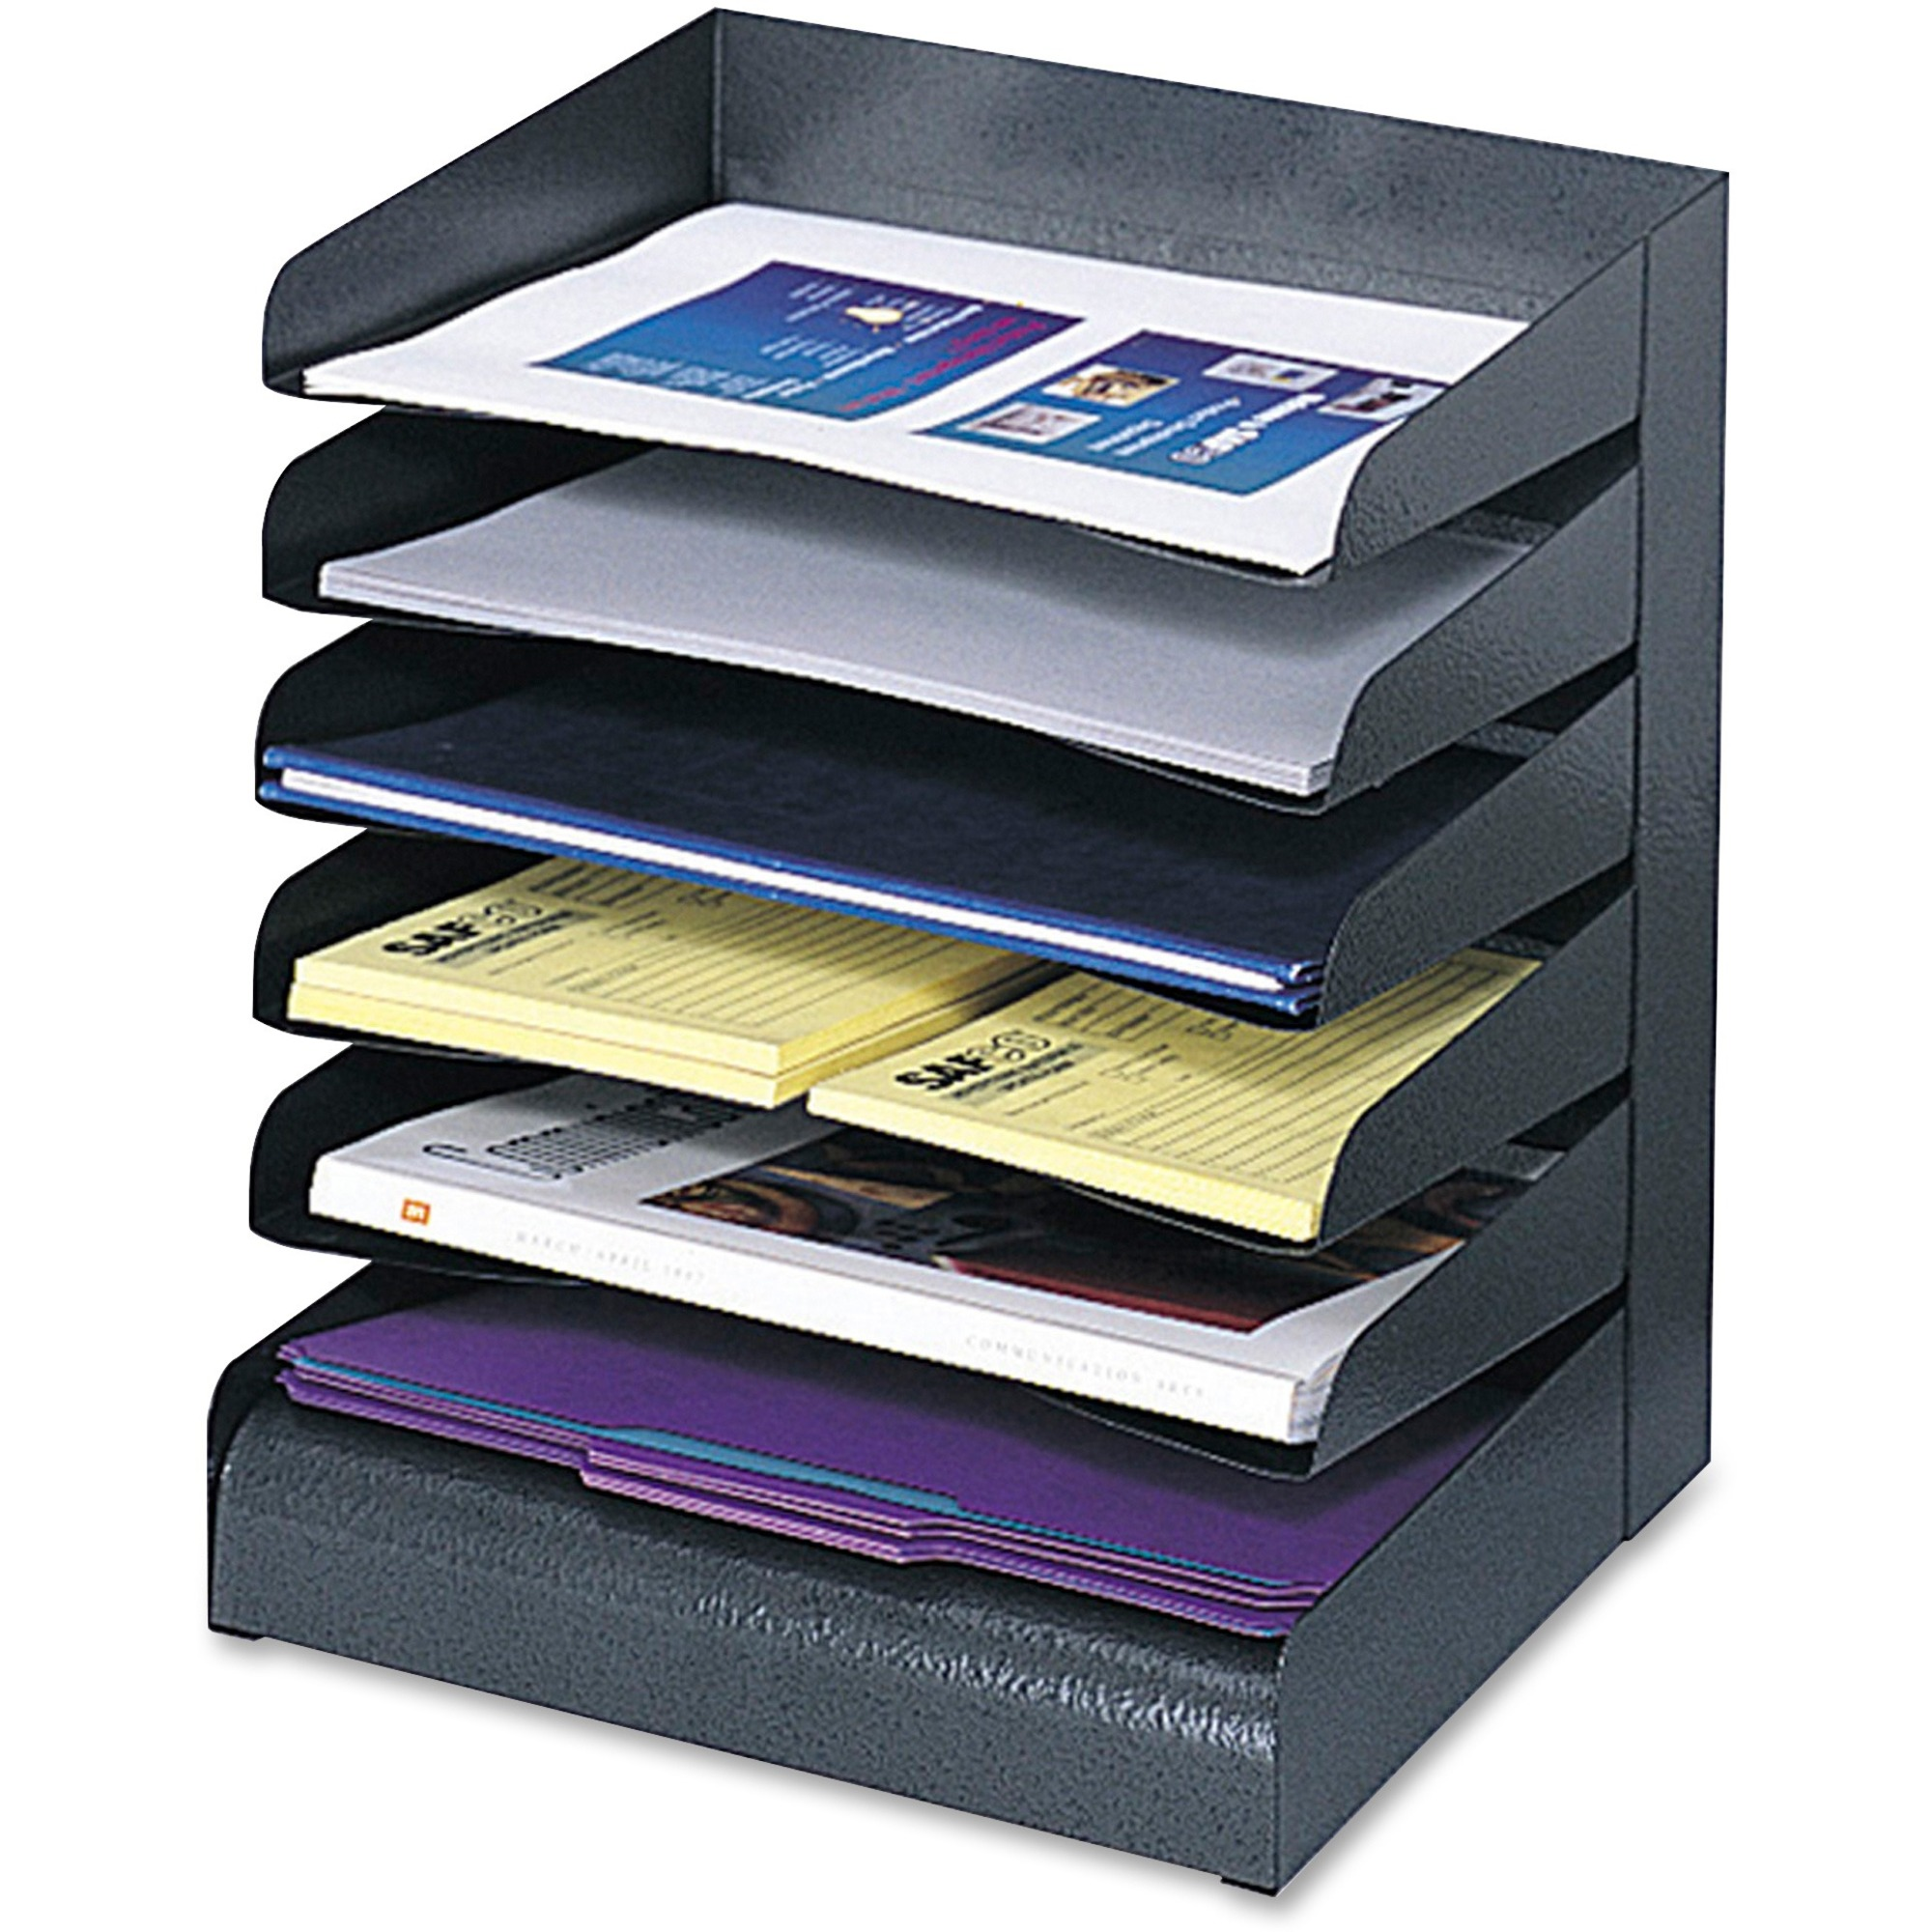 enlarge inc supplies company organizer vanderkolk product paper office to click desk eofficeproducts organizers